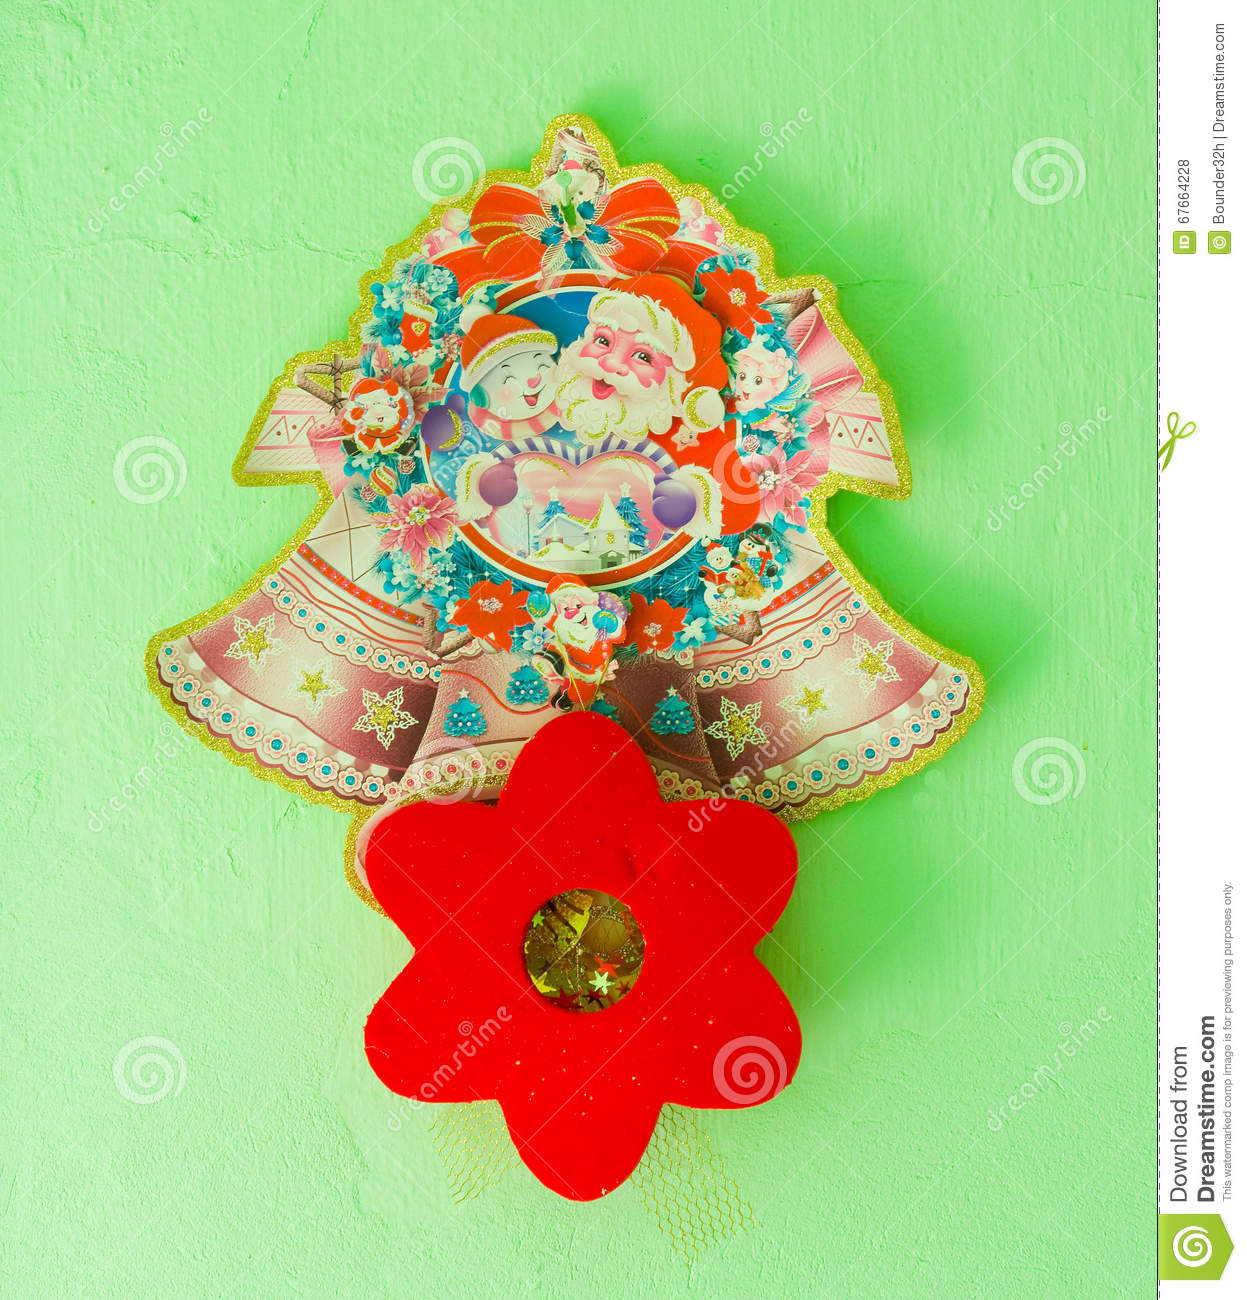 Christmas Decorations For The Wall Christmas Decorations On A Wall Stock Photo Image 67664228